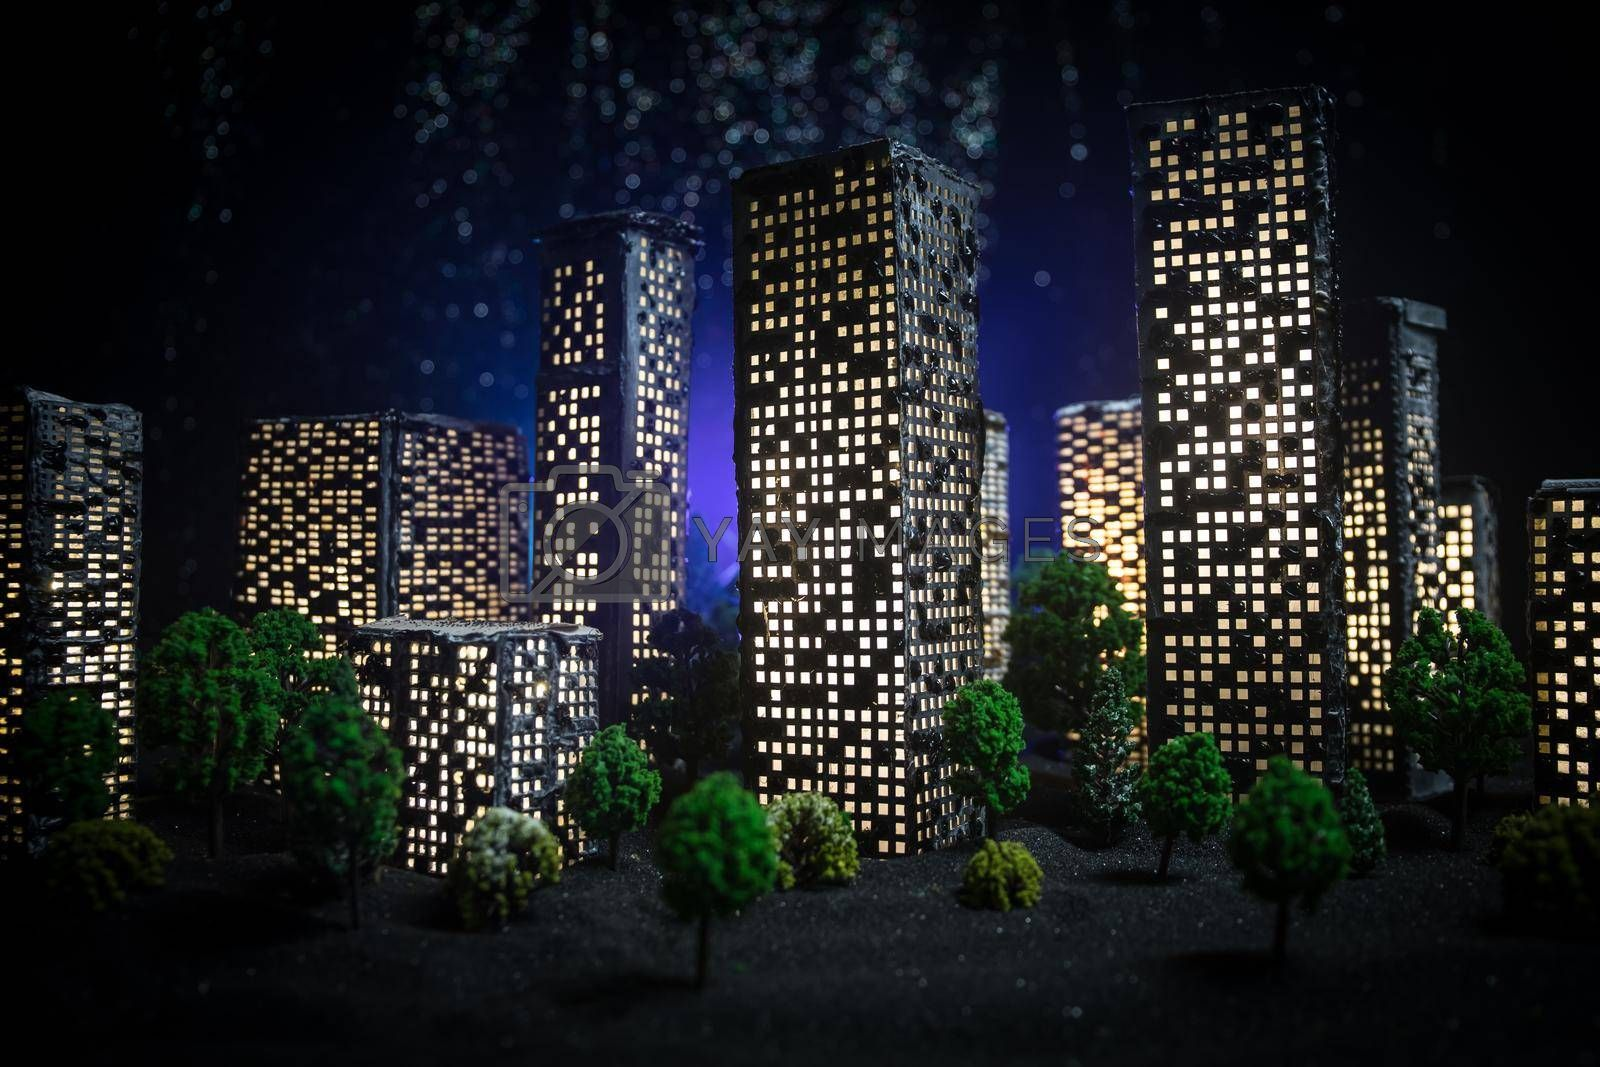 Cartoon style city buildings. Realistic city building miniatures with lights. background. Decorative city. Selective focus